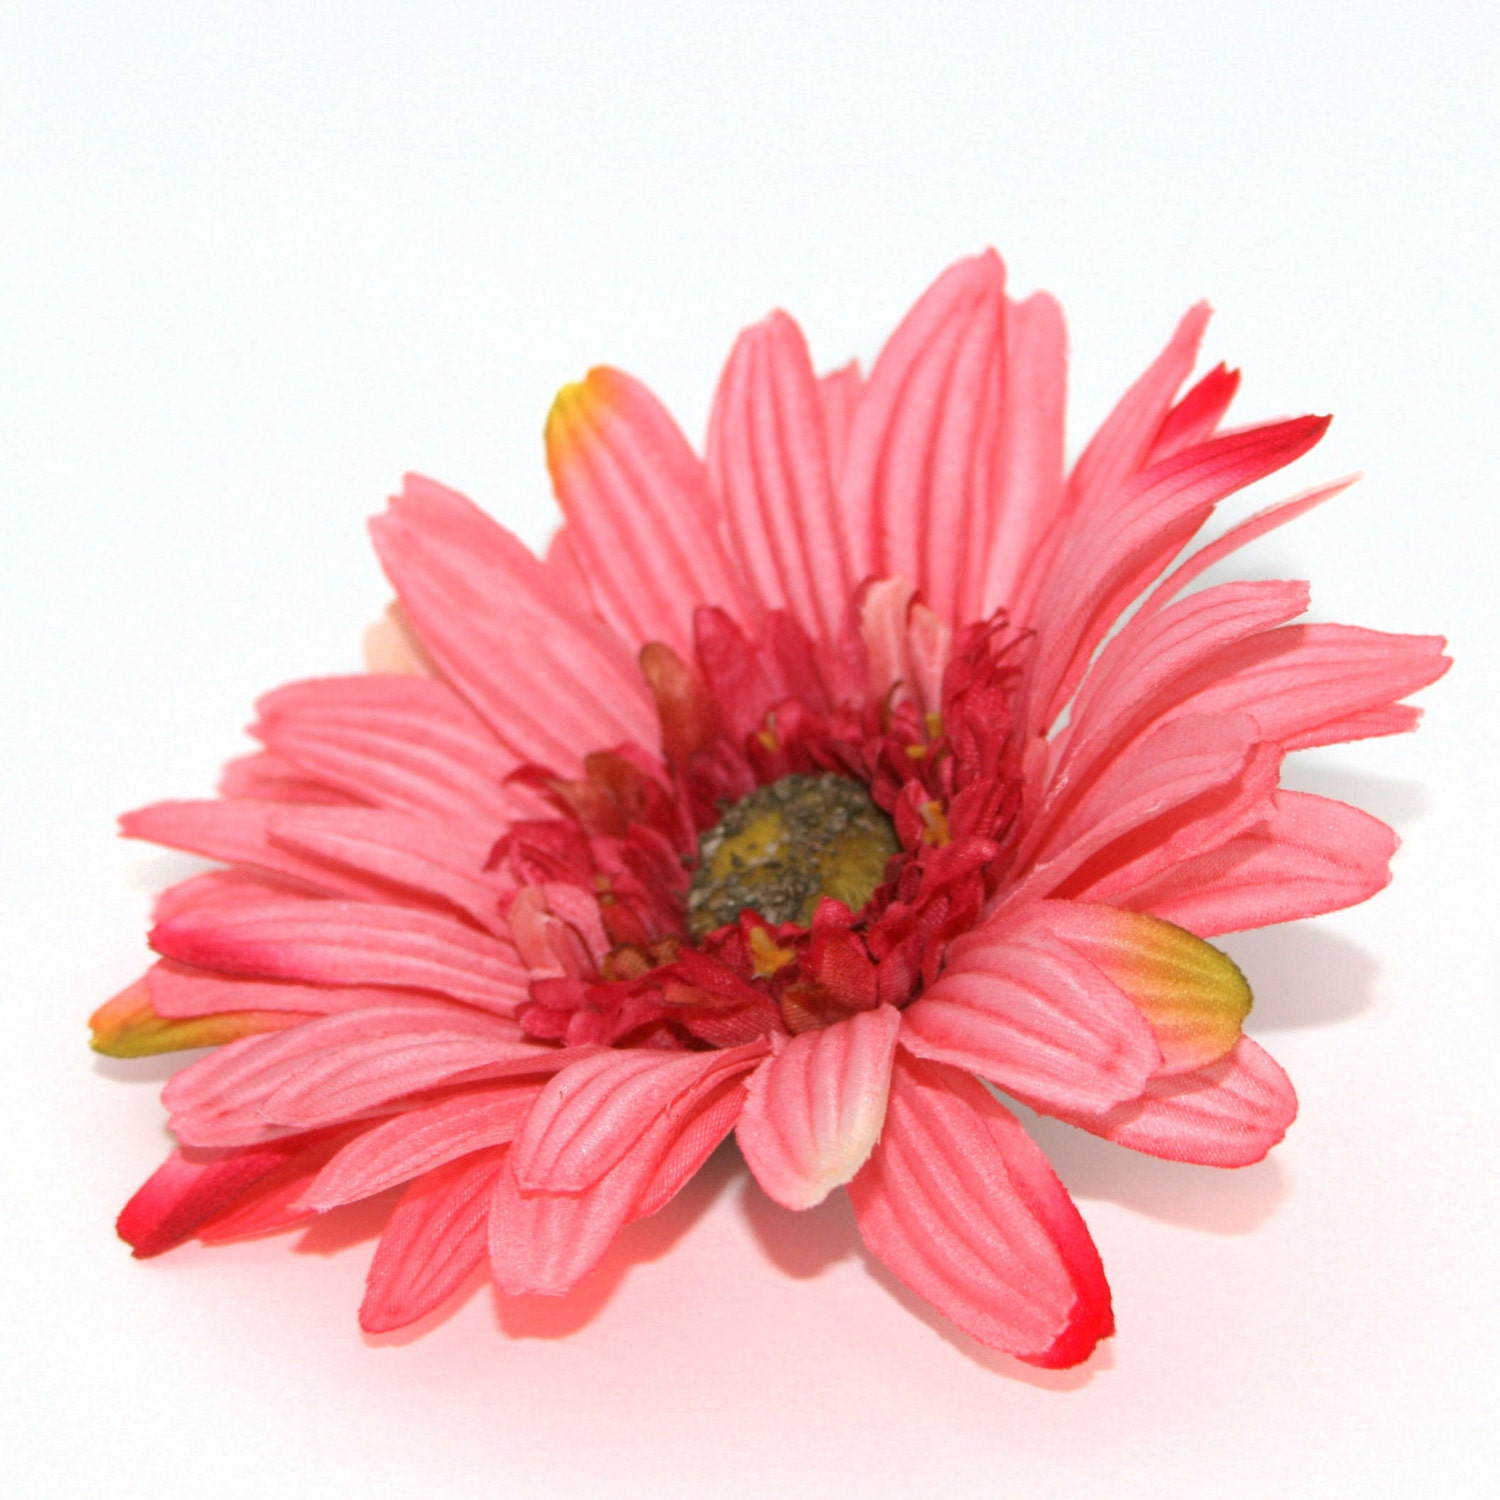 Textured Popsicle Pink Gerbera Daisy Artificial Flowers Etsy